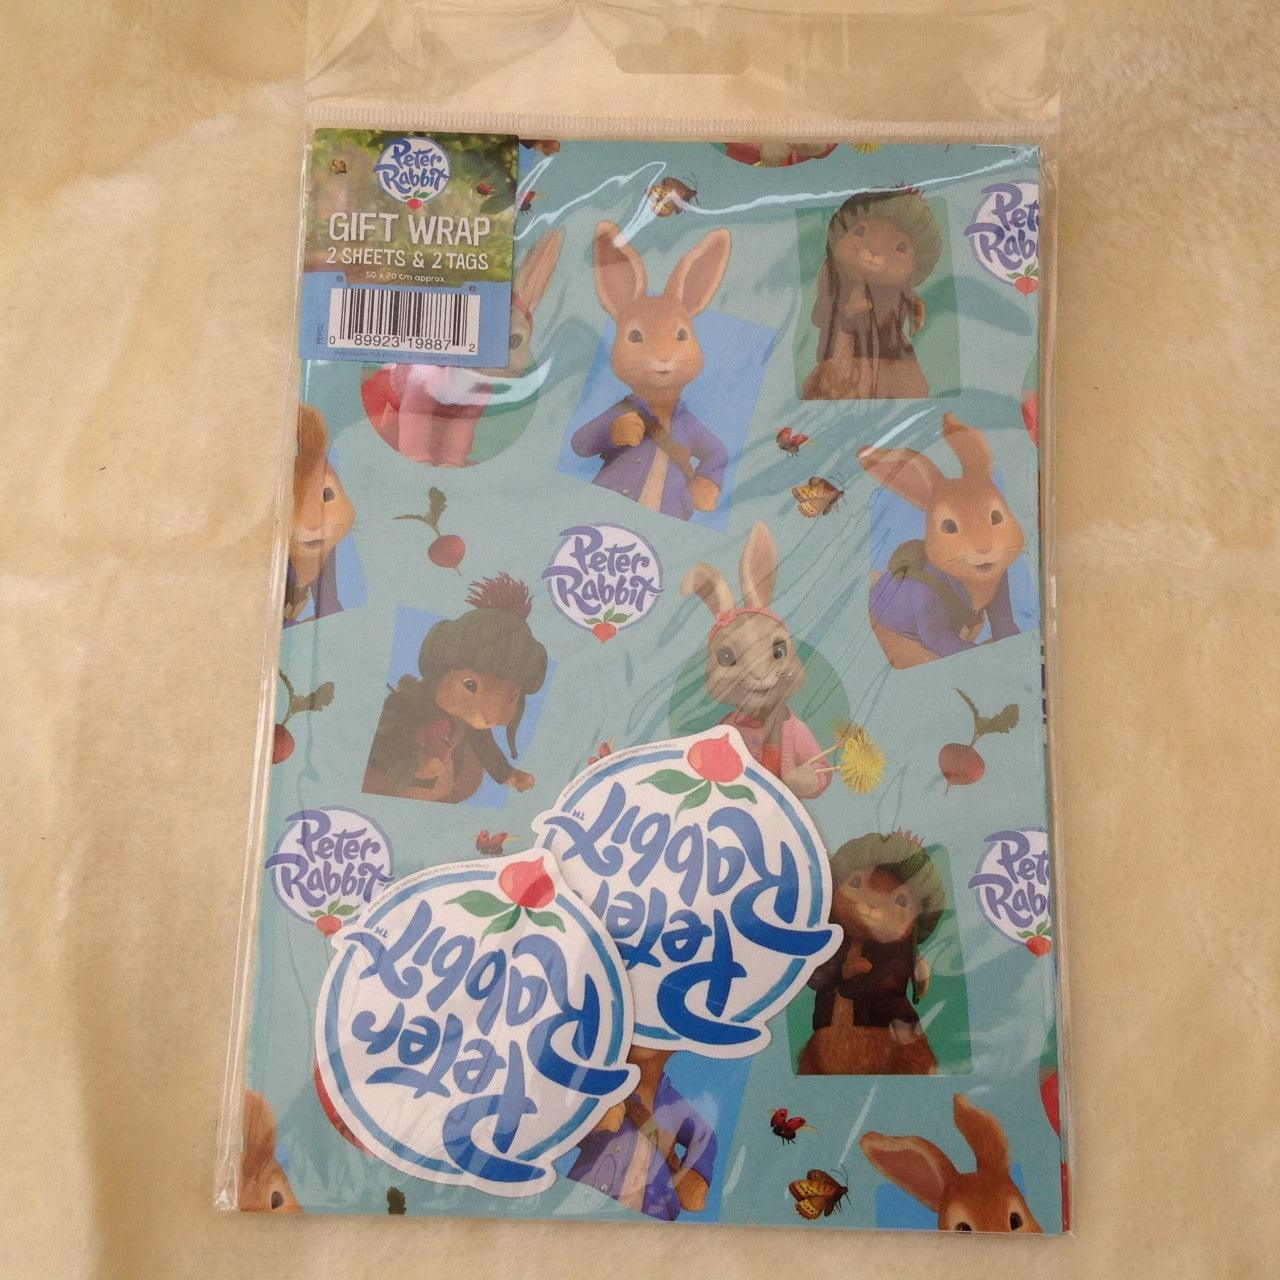 Peter Rabbit Gift Wrap